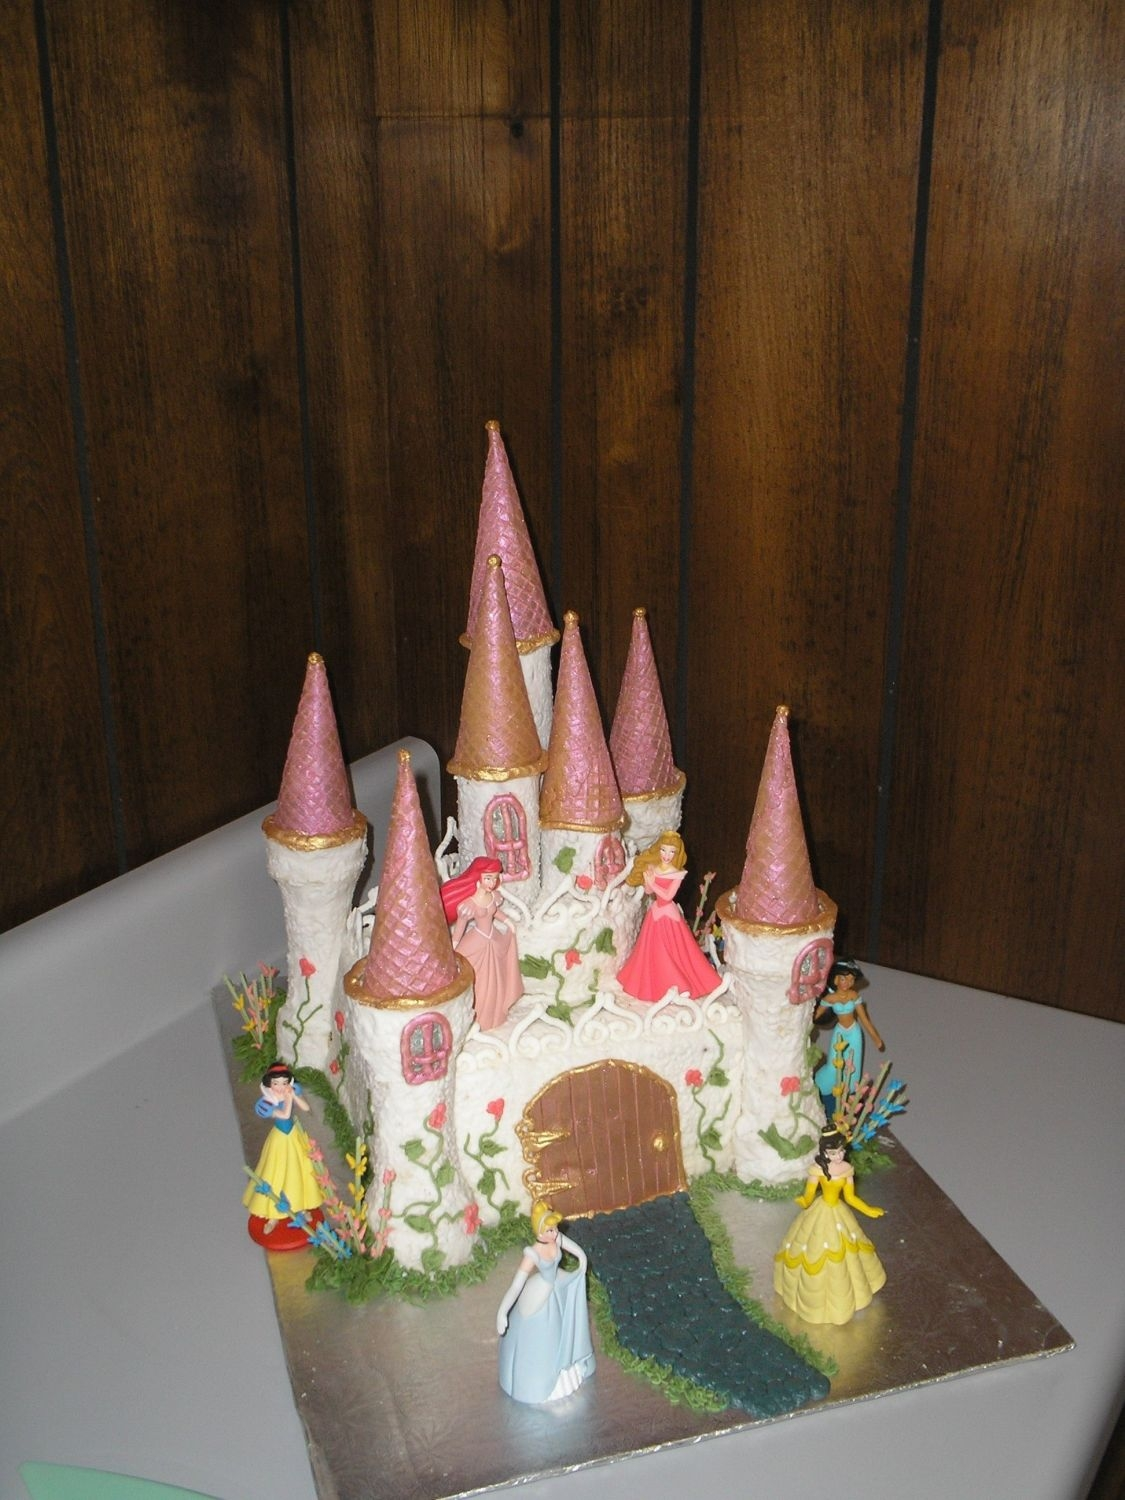 Princess Castle Cake  I am a new member of this site after searching all the great ideas for castles located here! This is my first castle cake that was inspired...